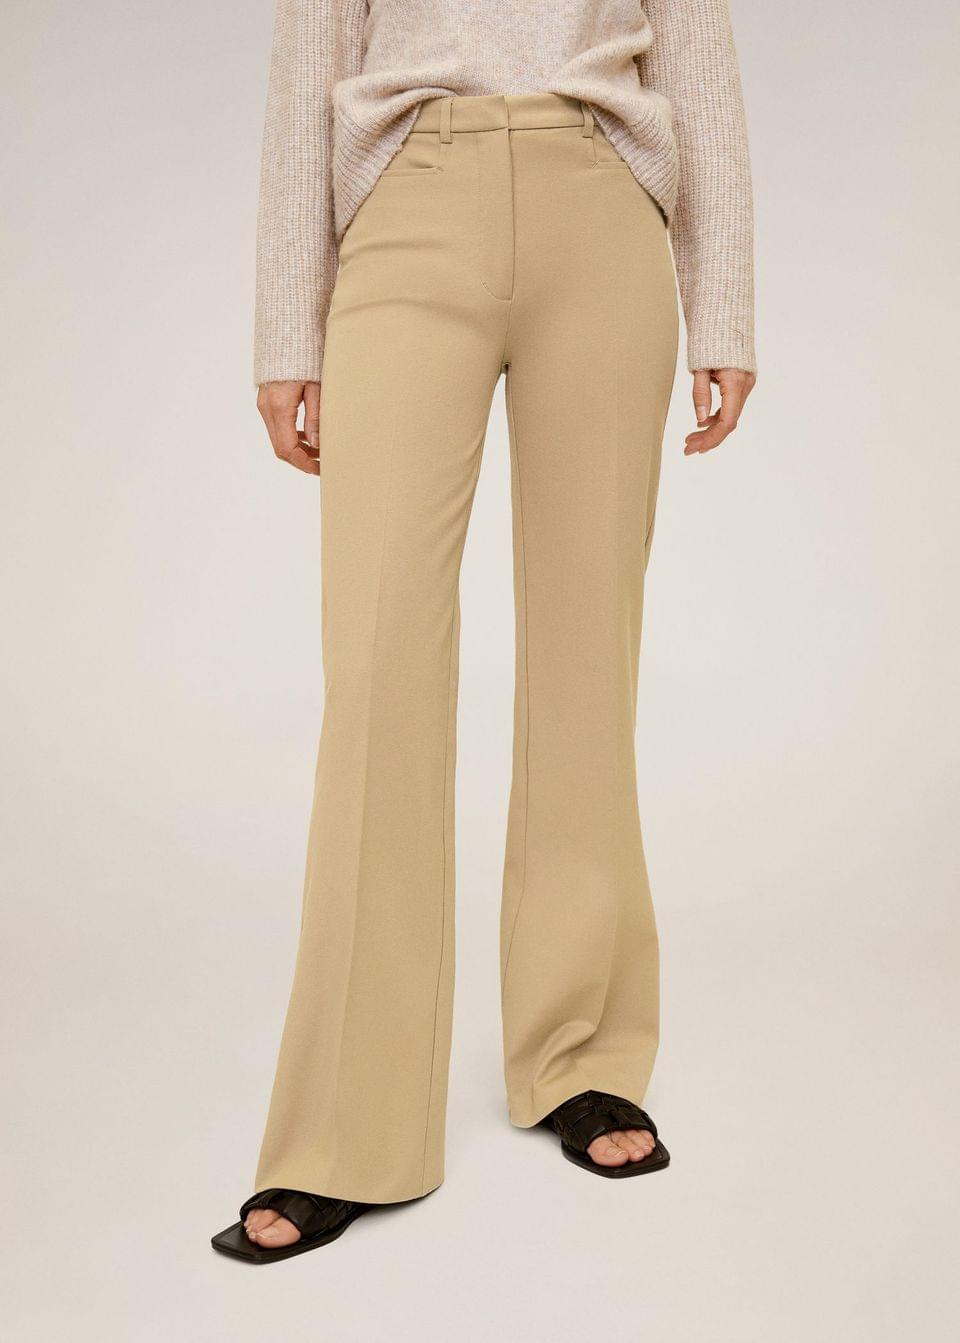 Women's Flared cotton trousers